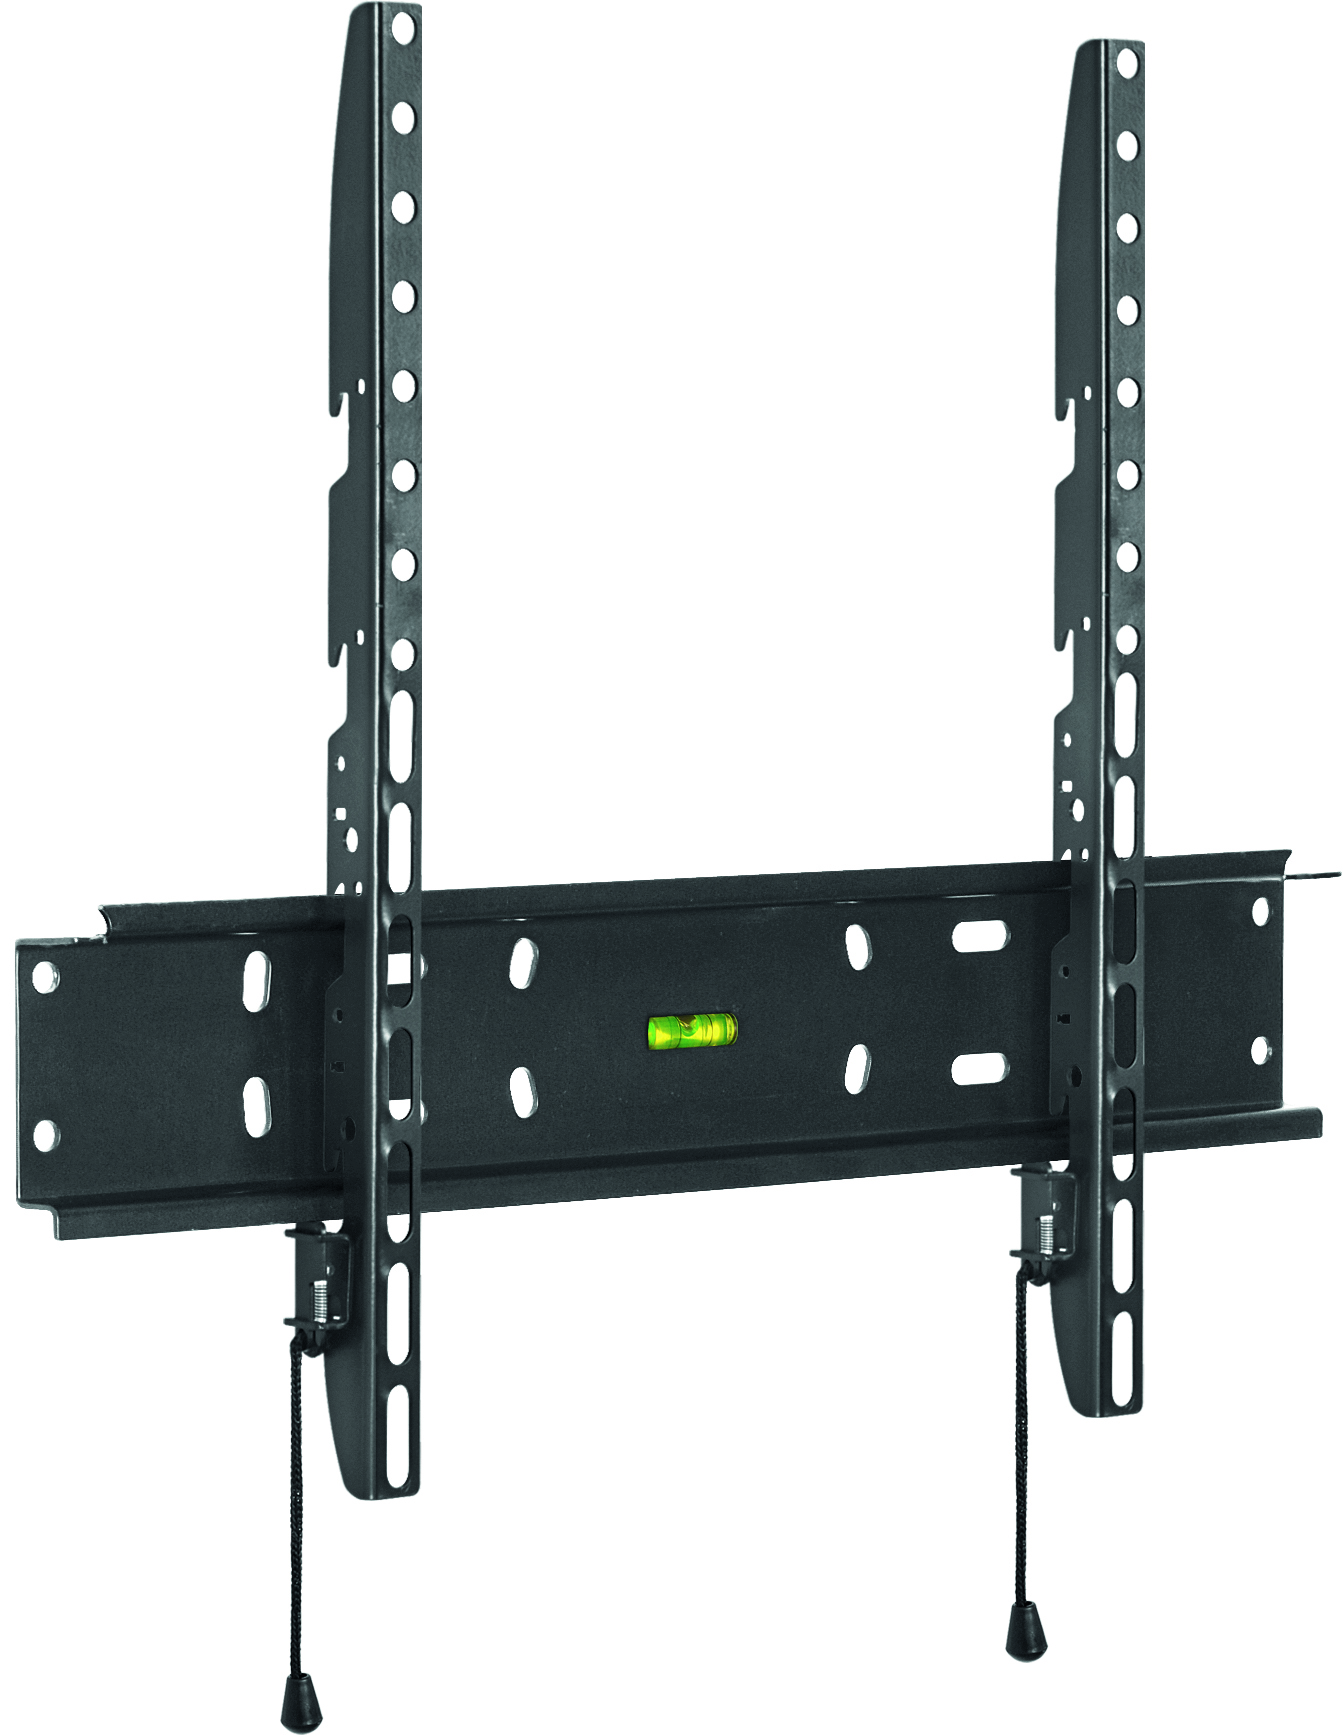 Barkan Fixed Wall Mount up to 65 Inches